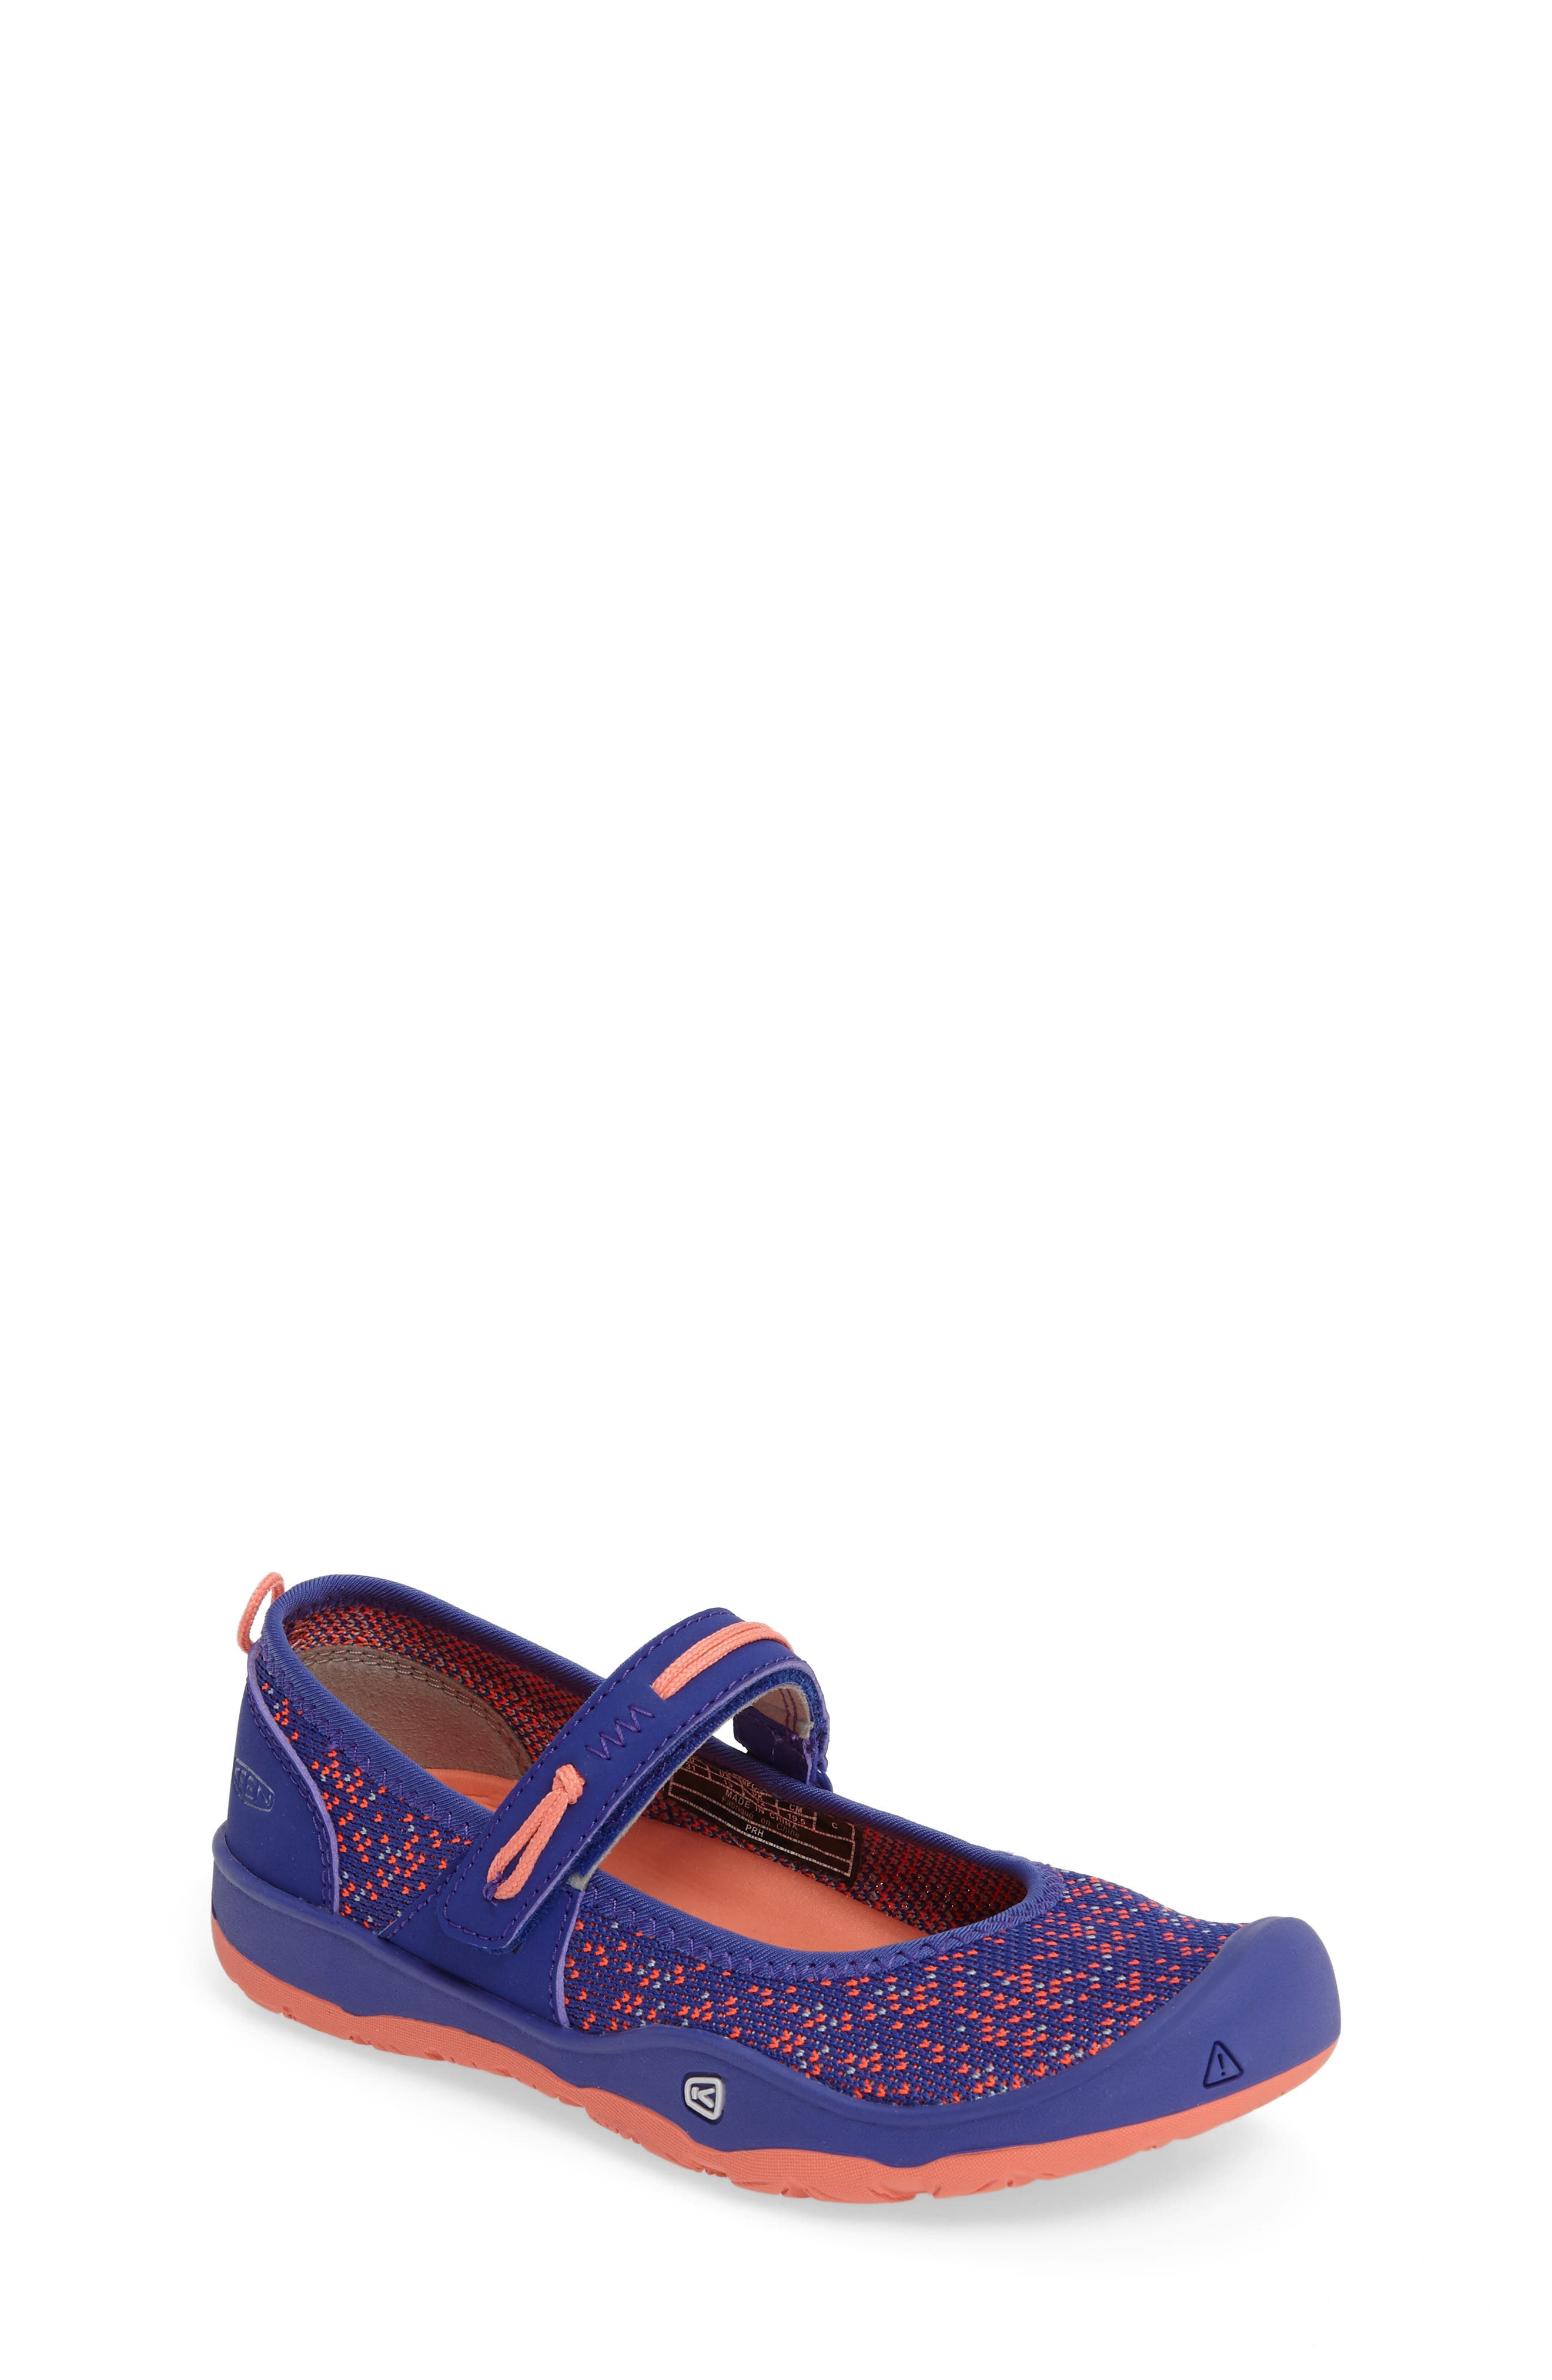 Keen Moxie Mary Jane (Baby, Walker, Toddler, Little Kid & Big Kid)